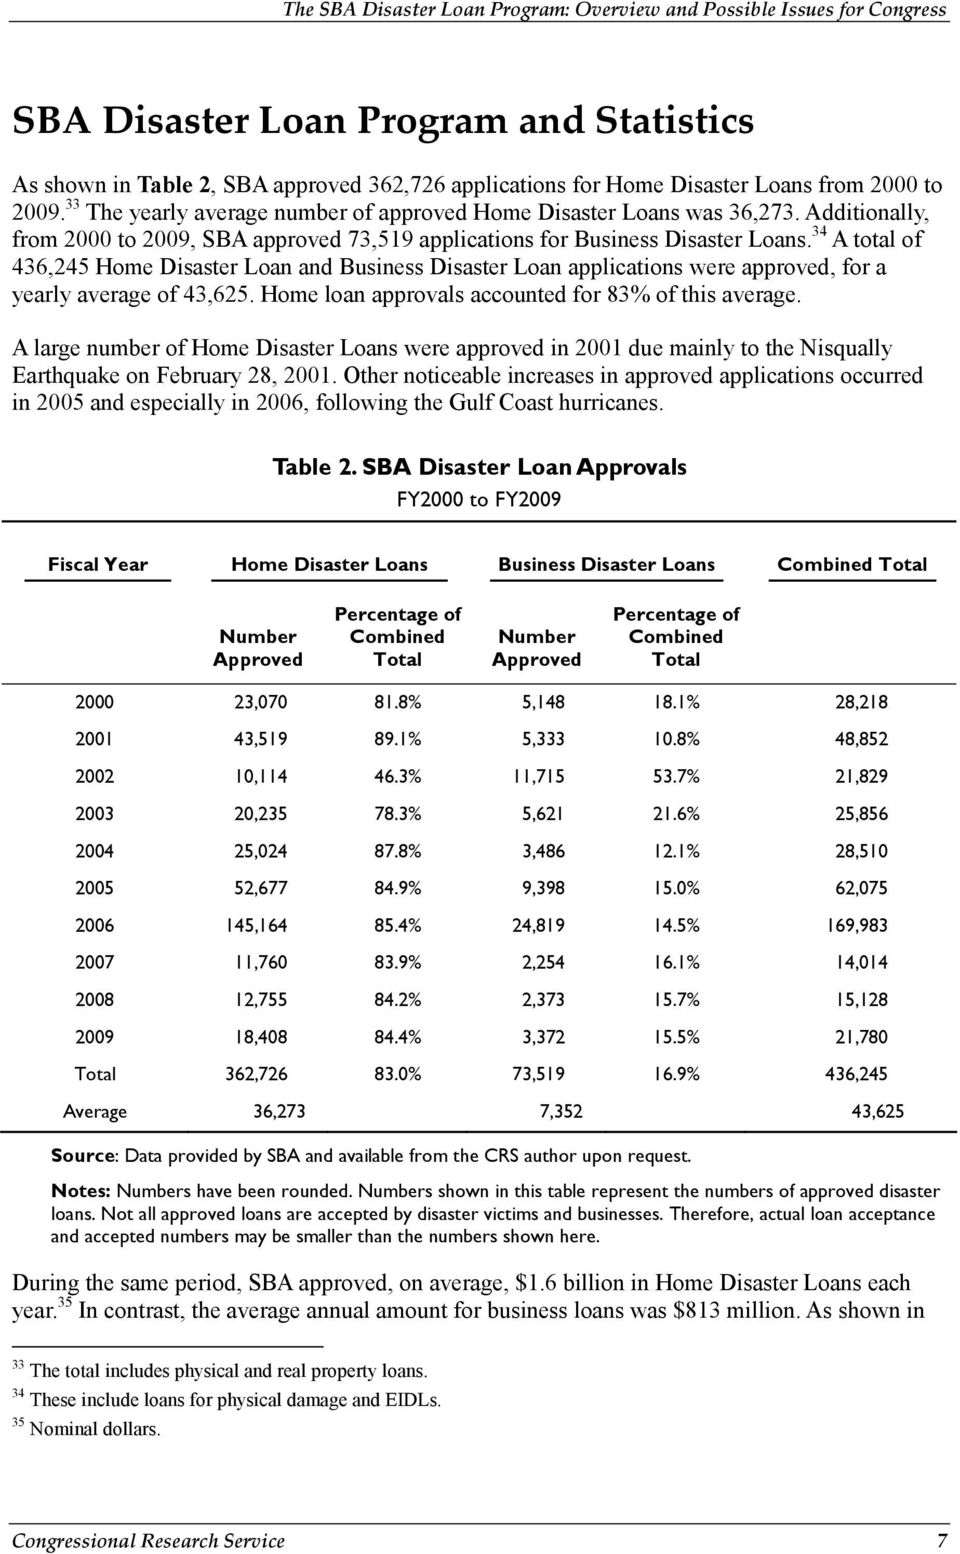 34 A total of 436,245 Home Disaster Loan and Business Disaster Loan applications were approved, for a yearly average of 43,625. Home loan approvals accounted for 83% of this average.